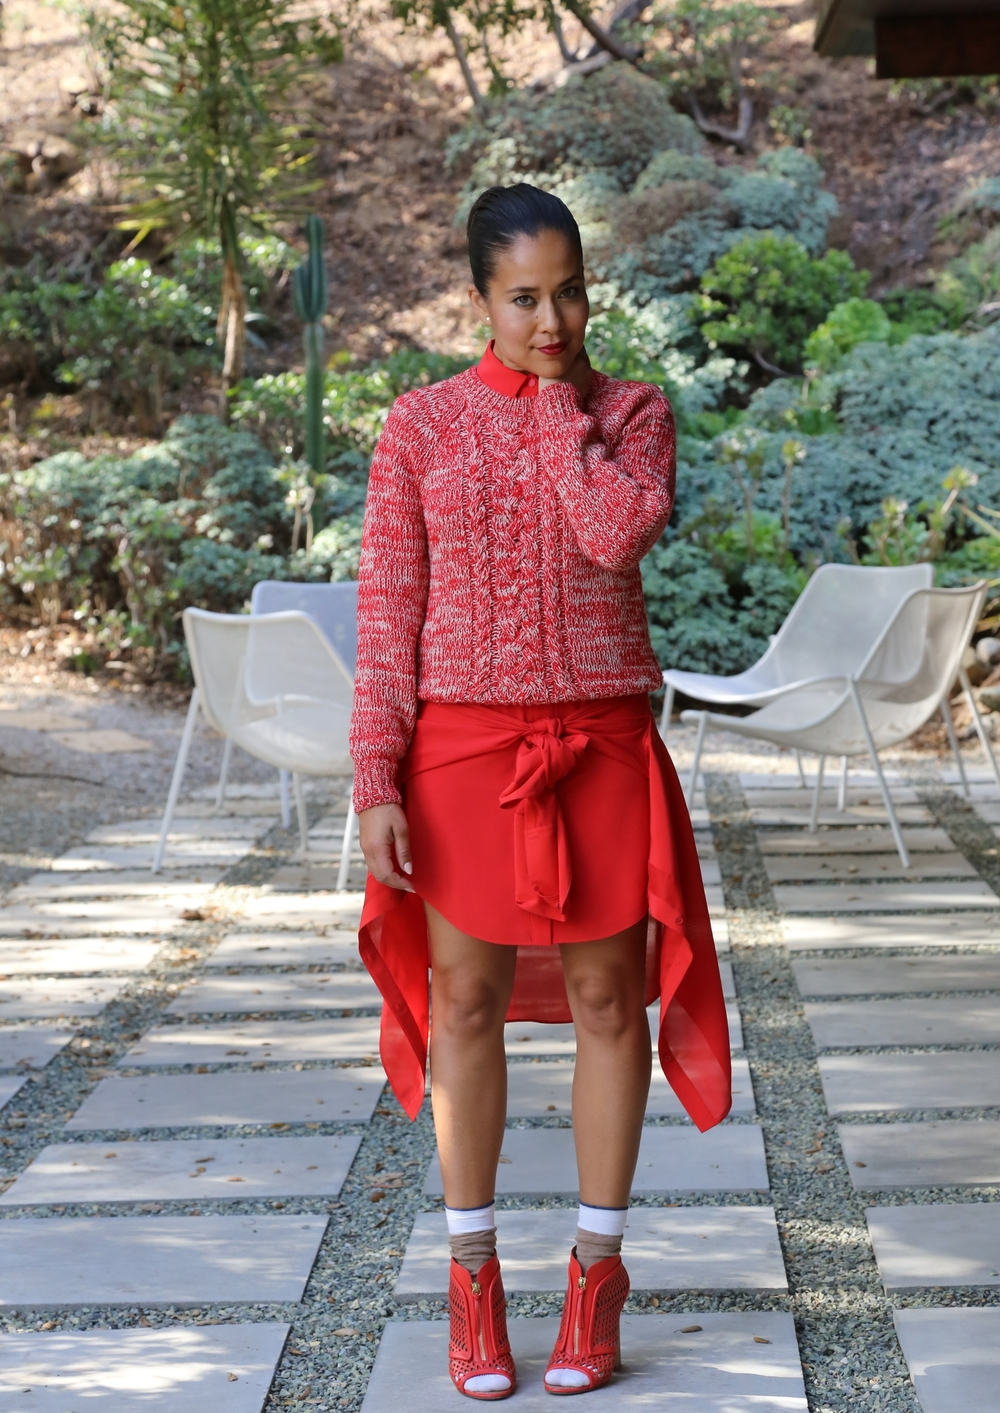 isabel-marant-sweater-alexander-wang-dress-proenza-heels-los-angeles.jpg